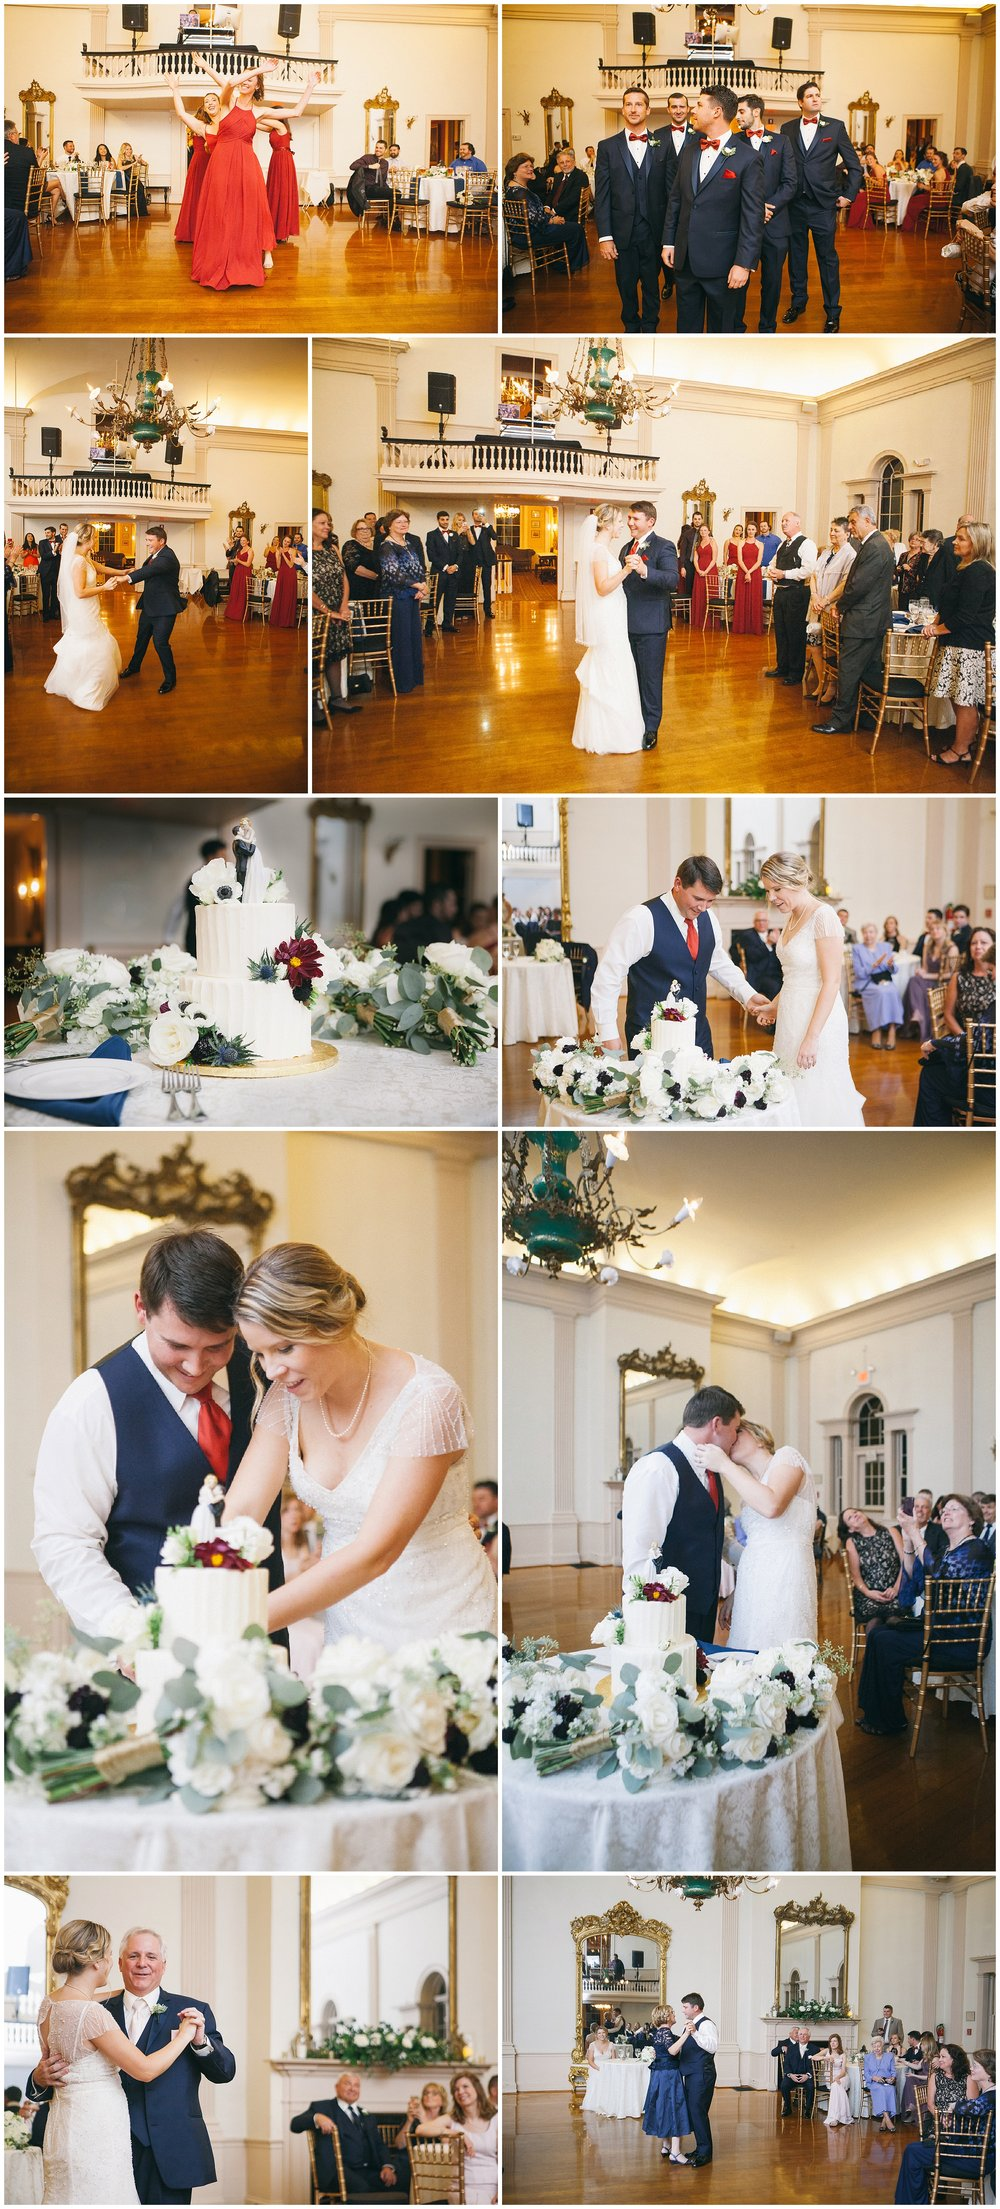 Images from a wedding reception at Hamilton Hall in Salem, Massachusetts. From the top: The bridal party enters to coordinated dances; the bride and groom enjoy their first dance; cutting the cake; photos of the couple dancing with their parents - Wedding Photography by Ryan Richardson Photography